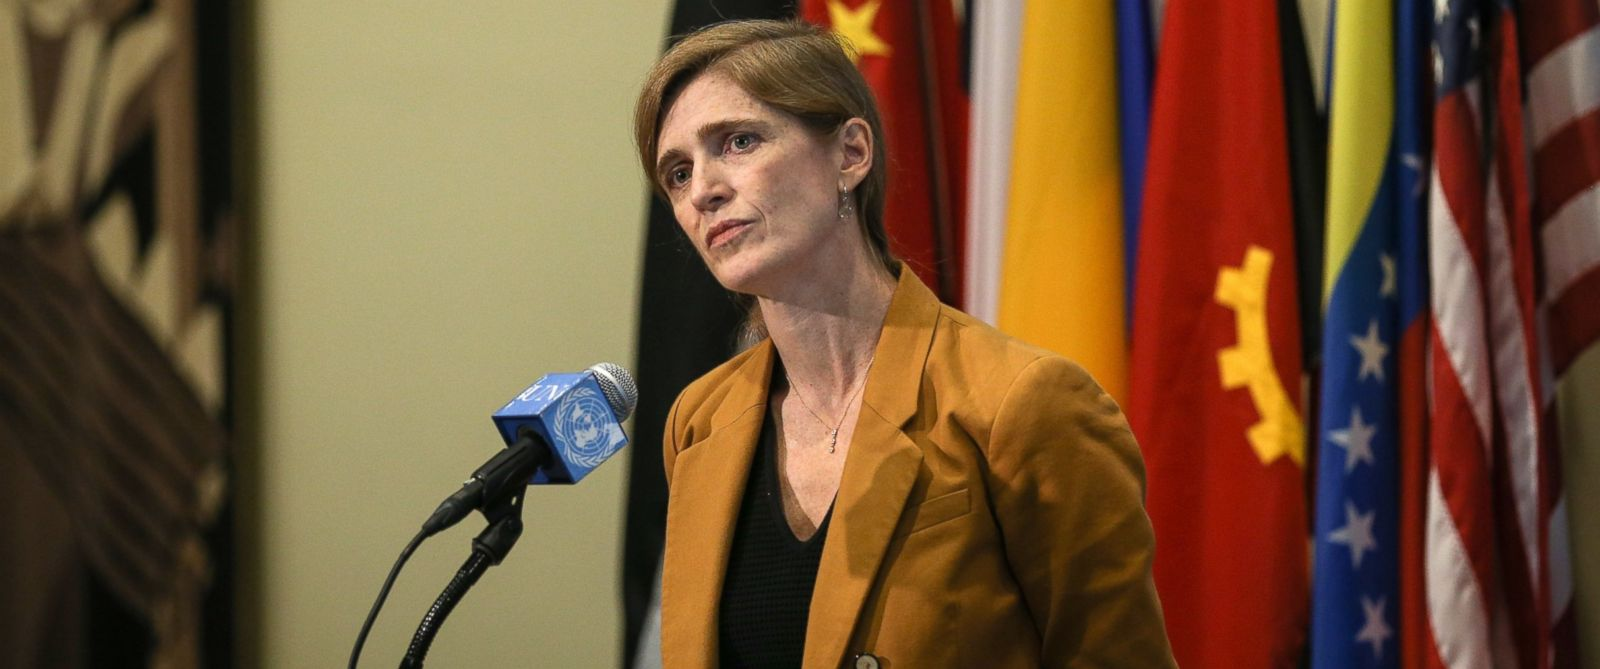 PHOTO: United States Ambassador to the United Nations, Samantha Power at a news conference at United Nations headquarters in New York, Dec. 08, 2015.